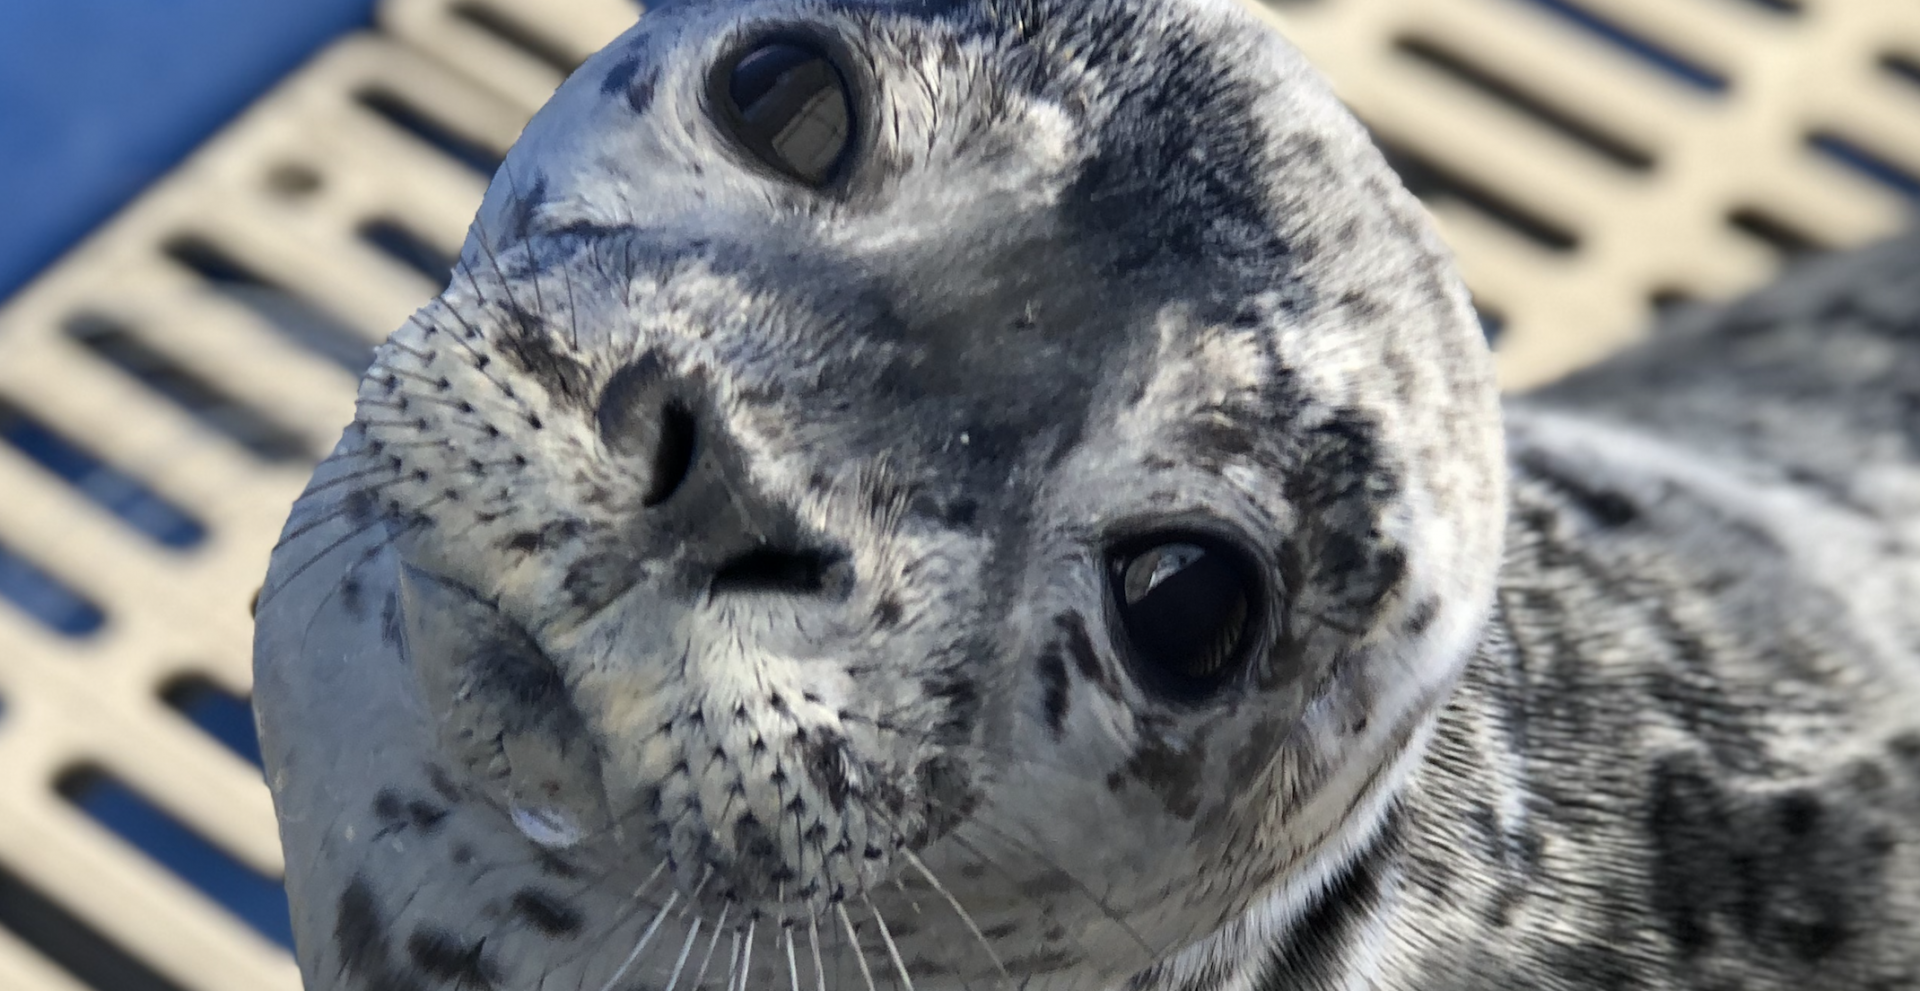 Daily Hive Readers: It's time to pick a name for your seal